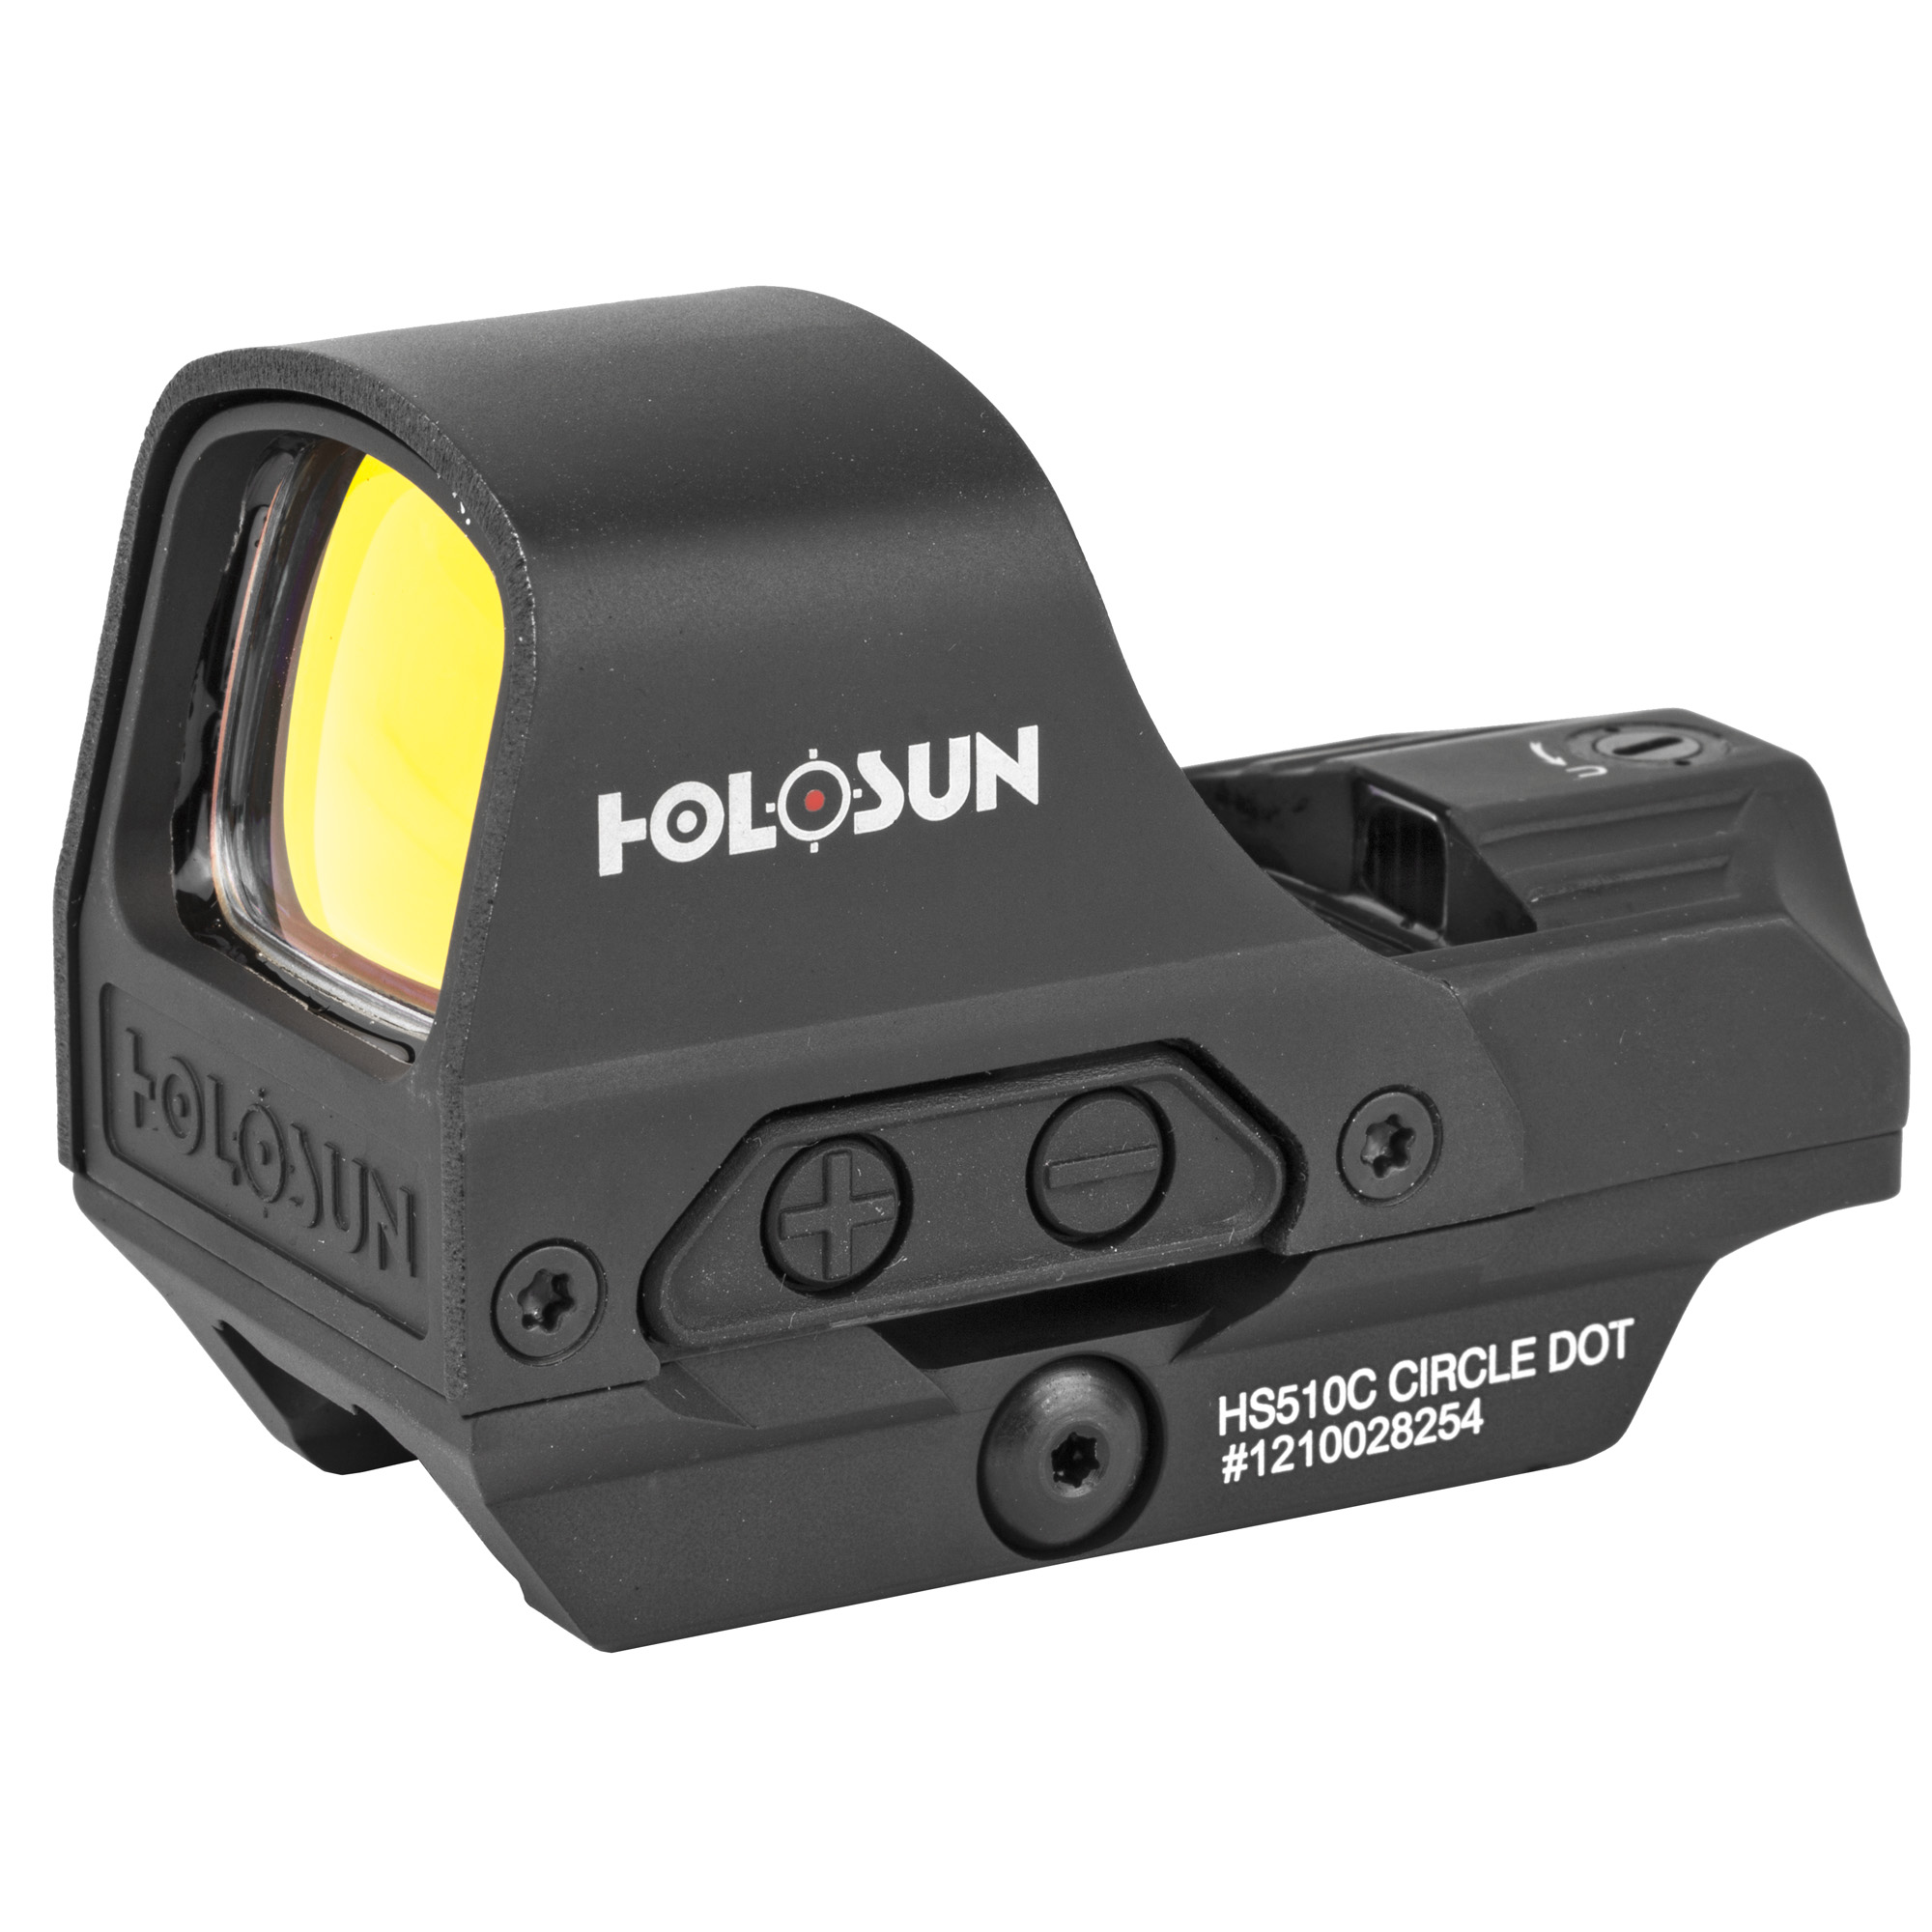 """The HS510C Open Reflex Circle Dot Sight has an open frame for a wide sight picture. It is powered by solar cell under normal usage"""" and a back-up battery to supplement power requirements in low light conditions. The reticle can be switched between a 65 MOA circle with 2 MOA dot"""" a 2 MOA dot only"""" or a 65 MOA ring only at the push of a button. Better yet"""" the same LED projects both reticles"""" so no re-zeroing is necessary."""